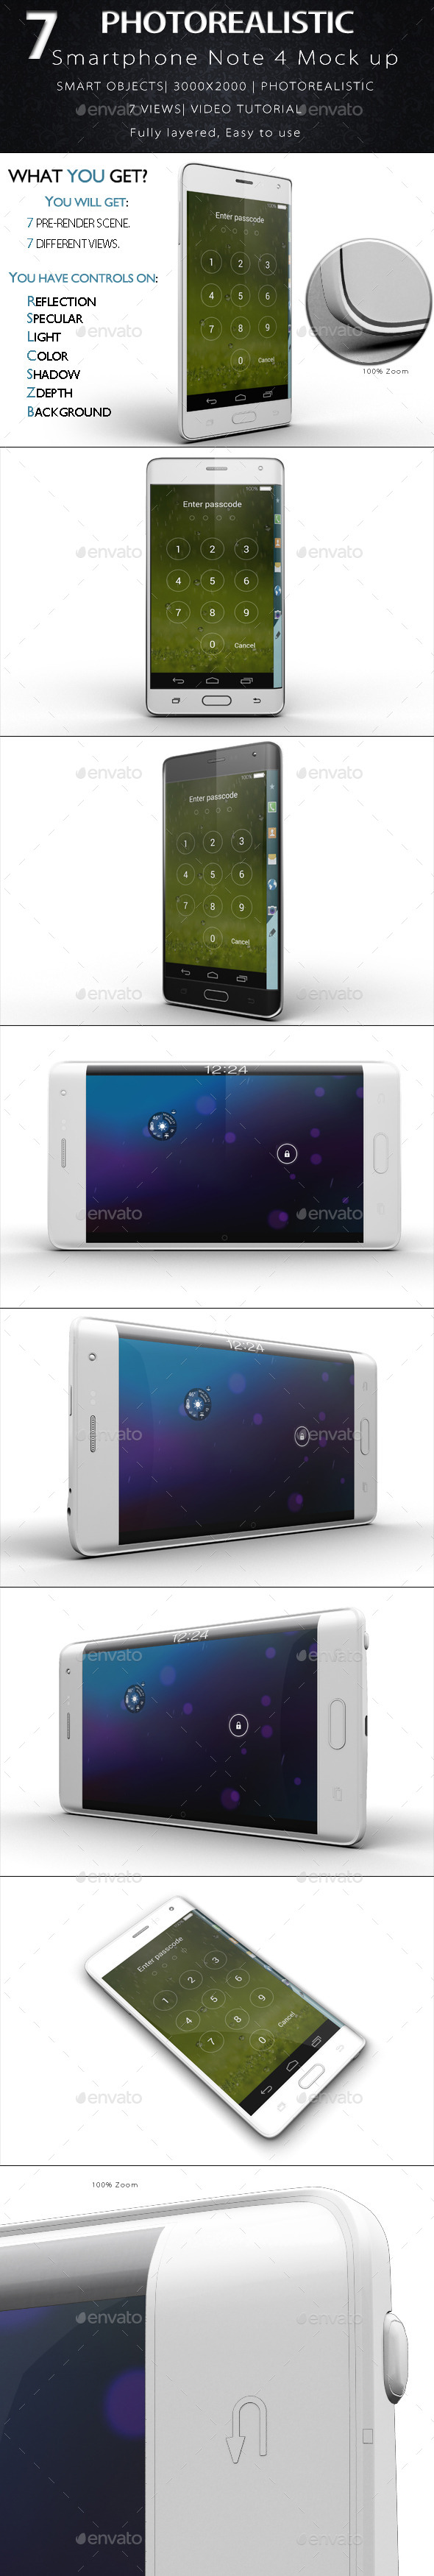 Galaxy Note Edge Smartphone Mock Up - Product Mock-Ups Graphics